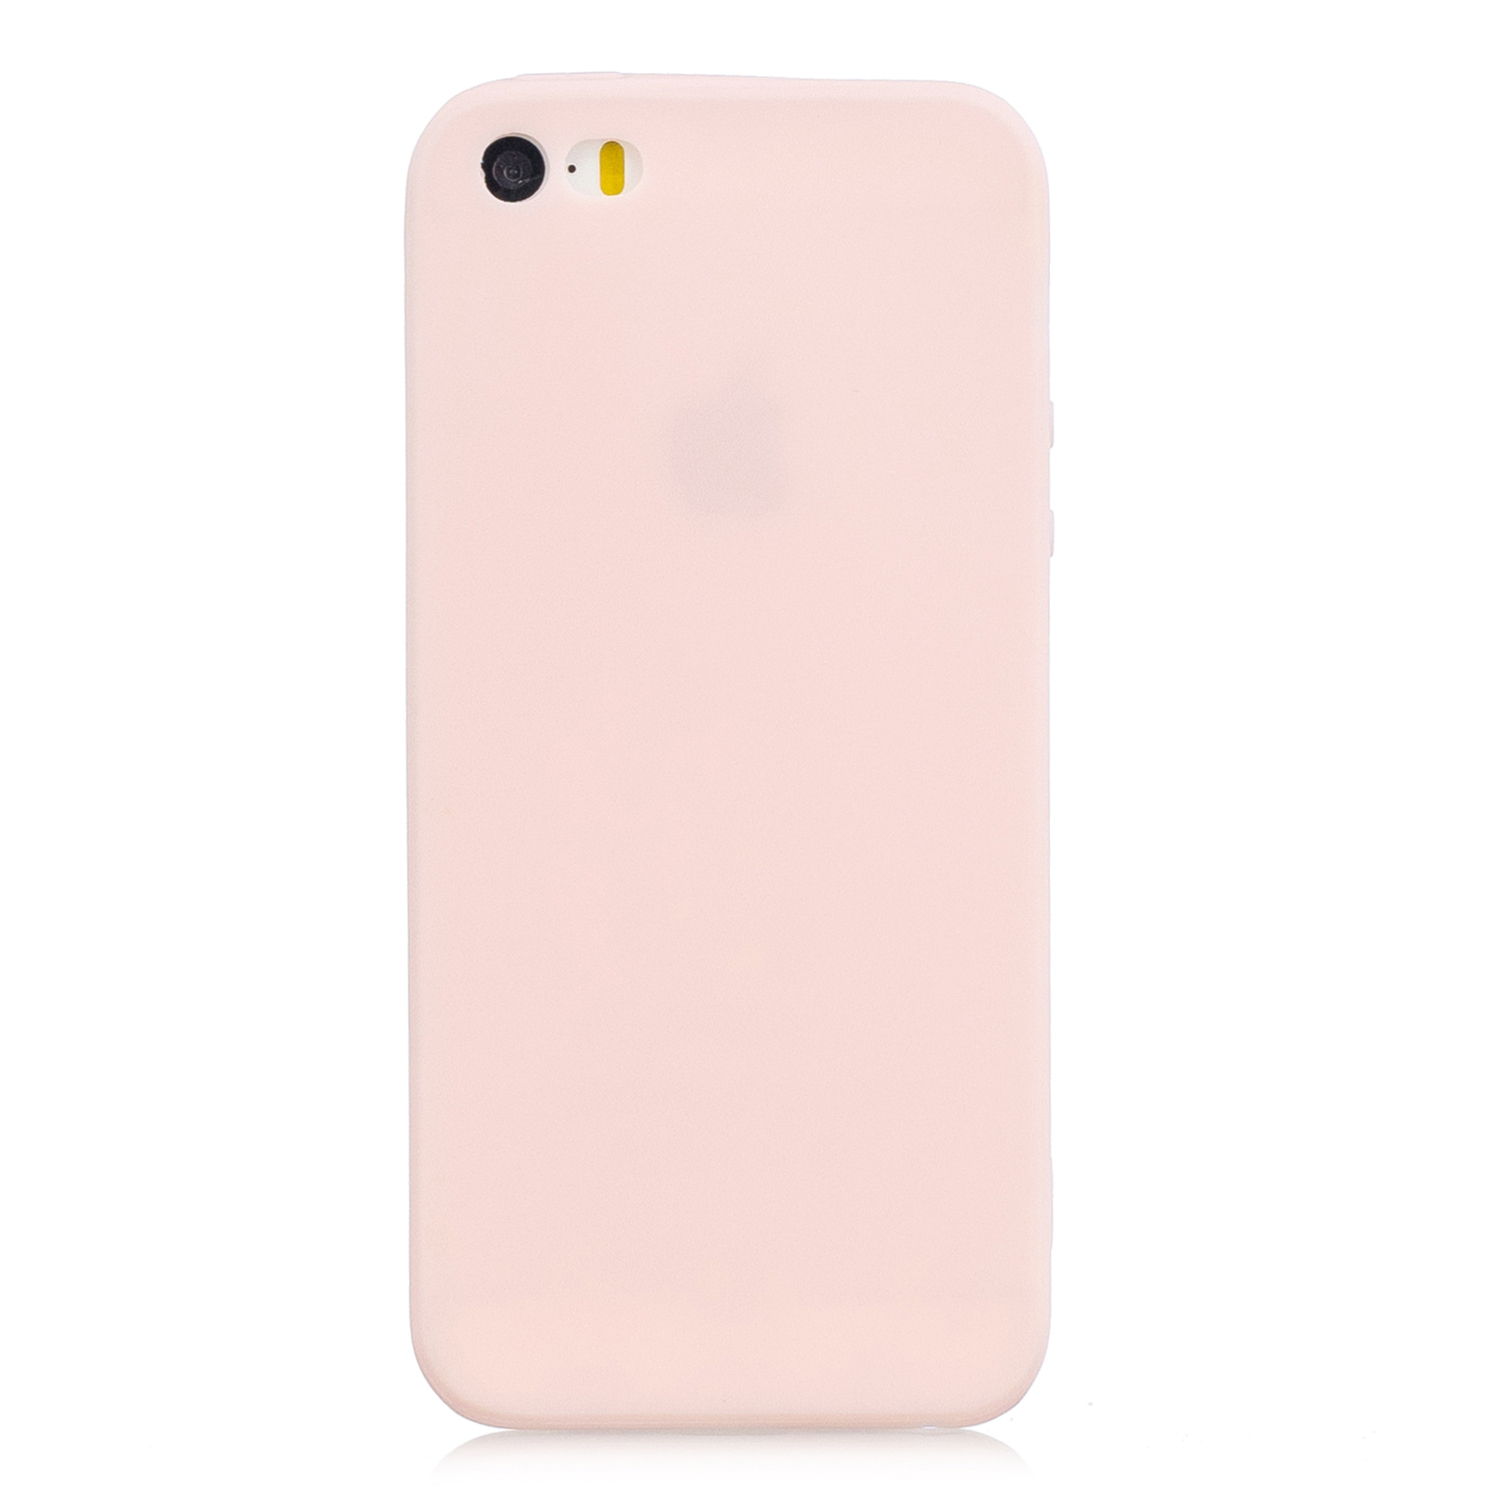 for iPhone 5/5S/SE Lovely Candy Color Matte TPU Anti-scratch Non-slip Protective Cover Back Case Light pink